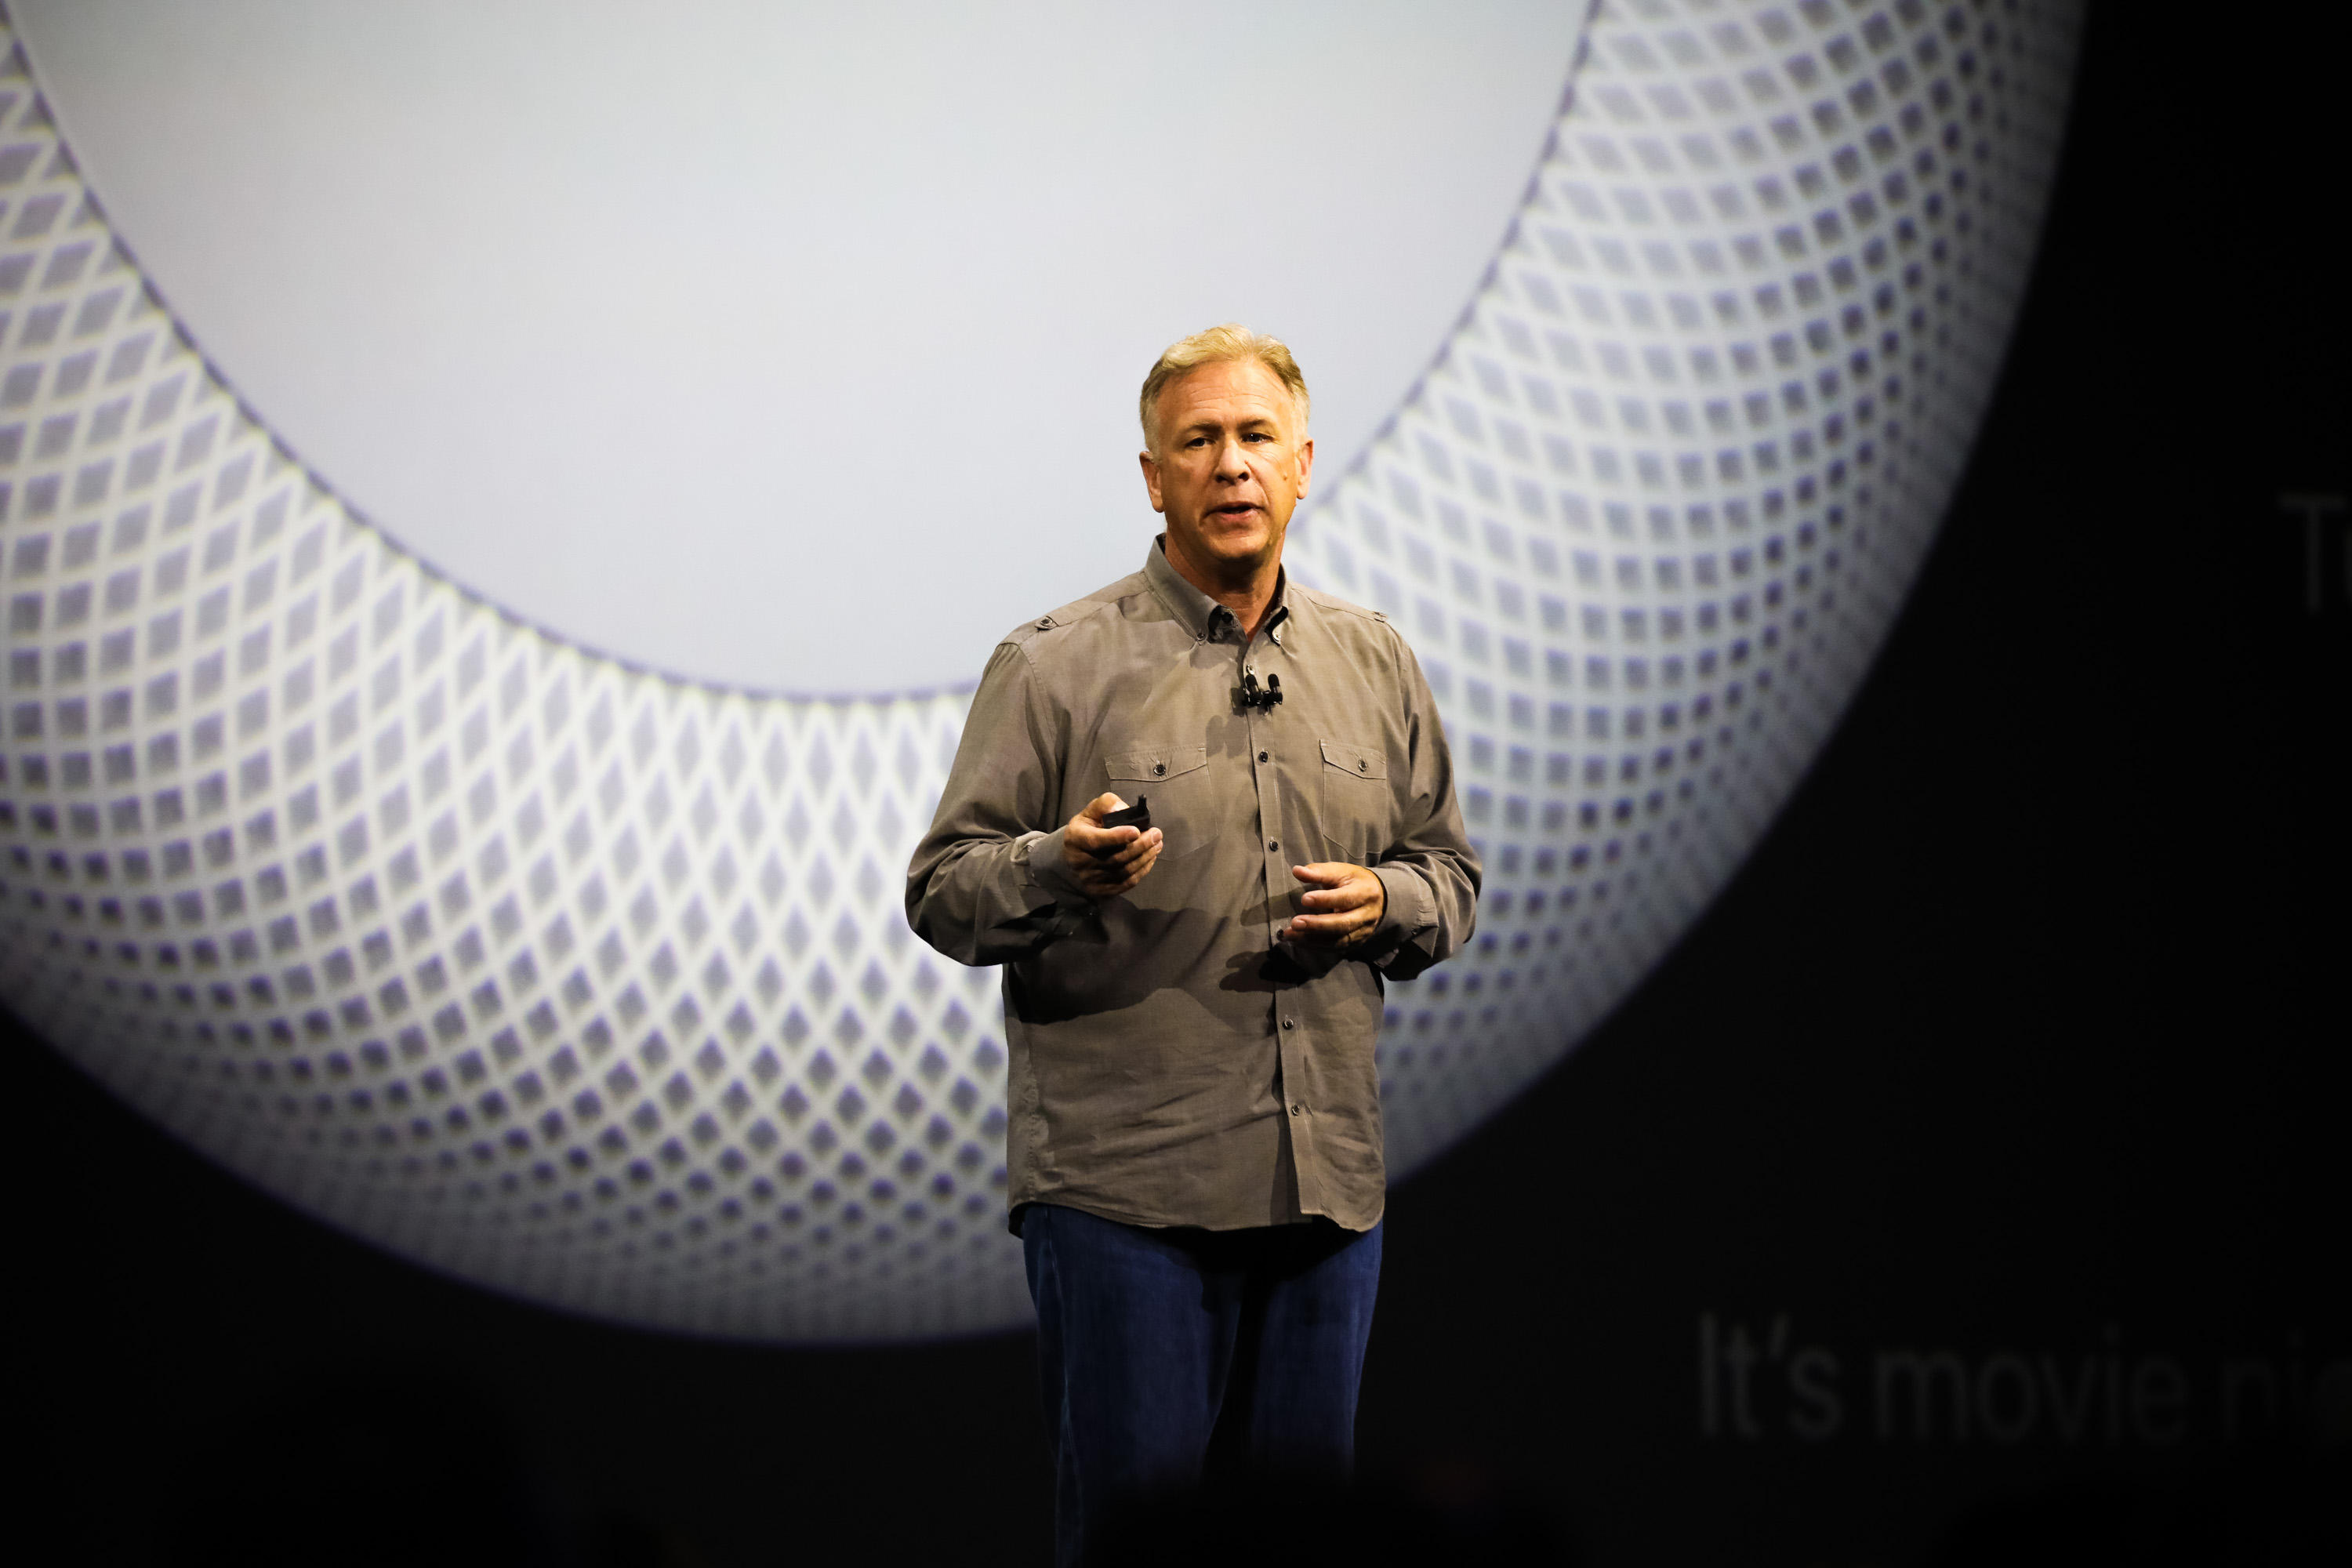 Apple's Phil Schiller shows off the HomePod.